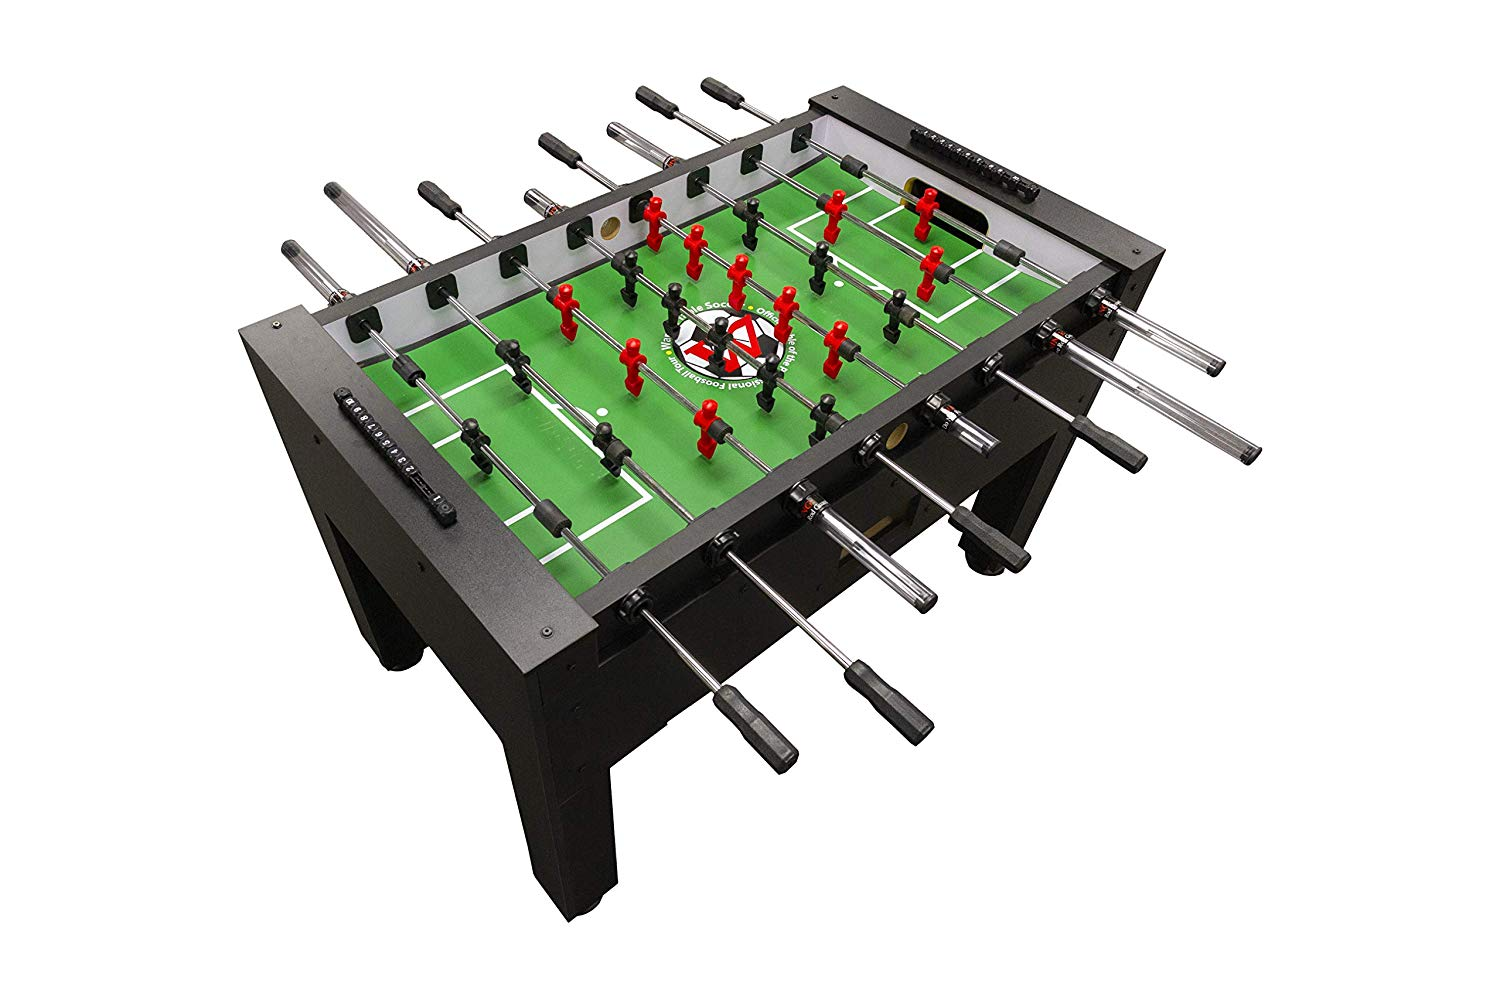 Foosball Table Setup & Foosball Assembly Instructions